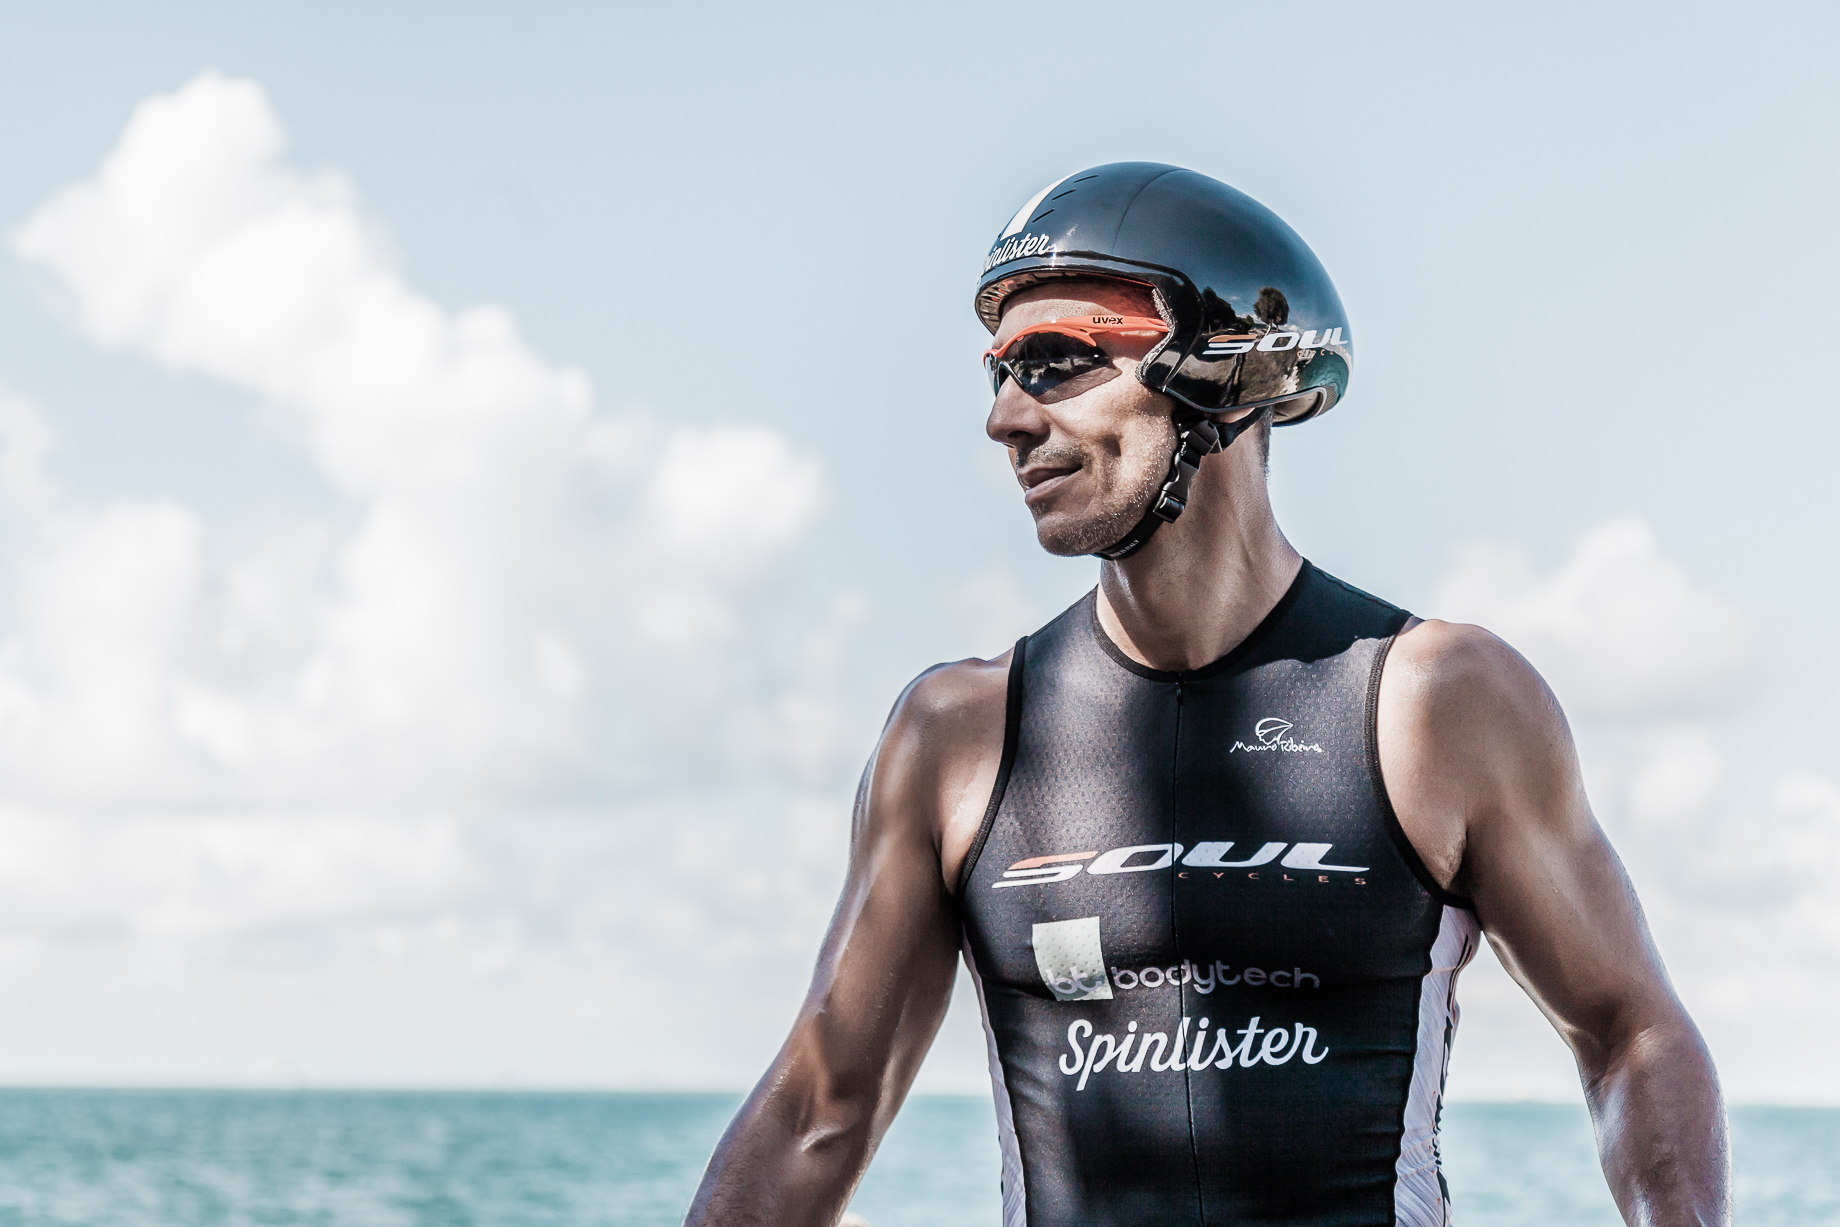 20150419_JPH_Triathlon_Joao_Paulo_Diniz_FRI_0057